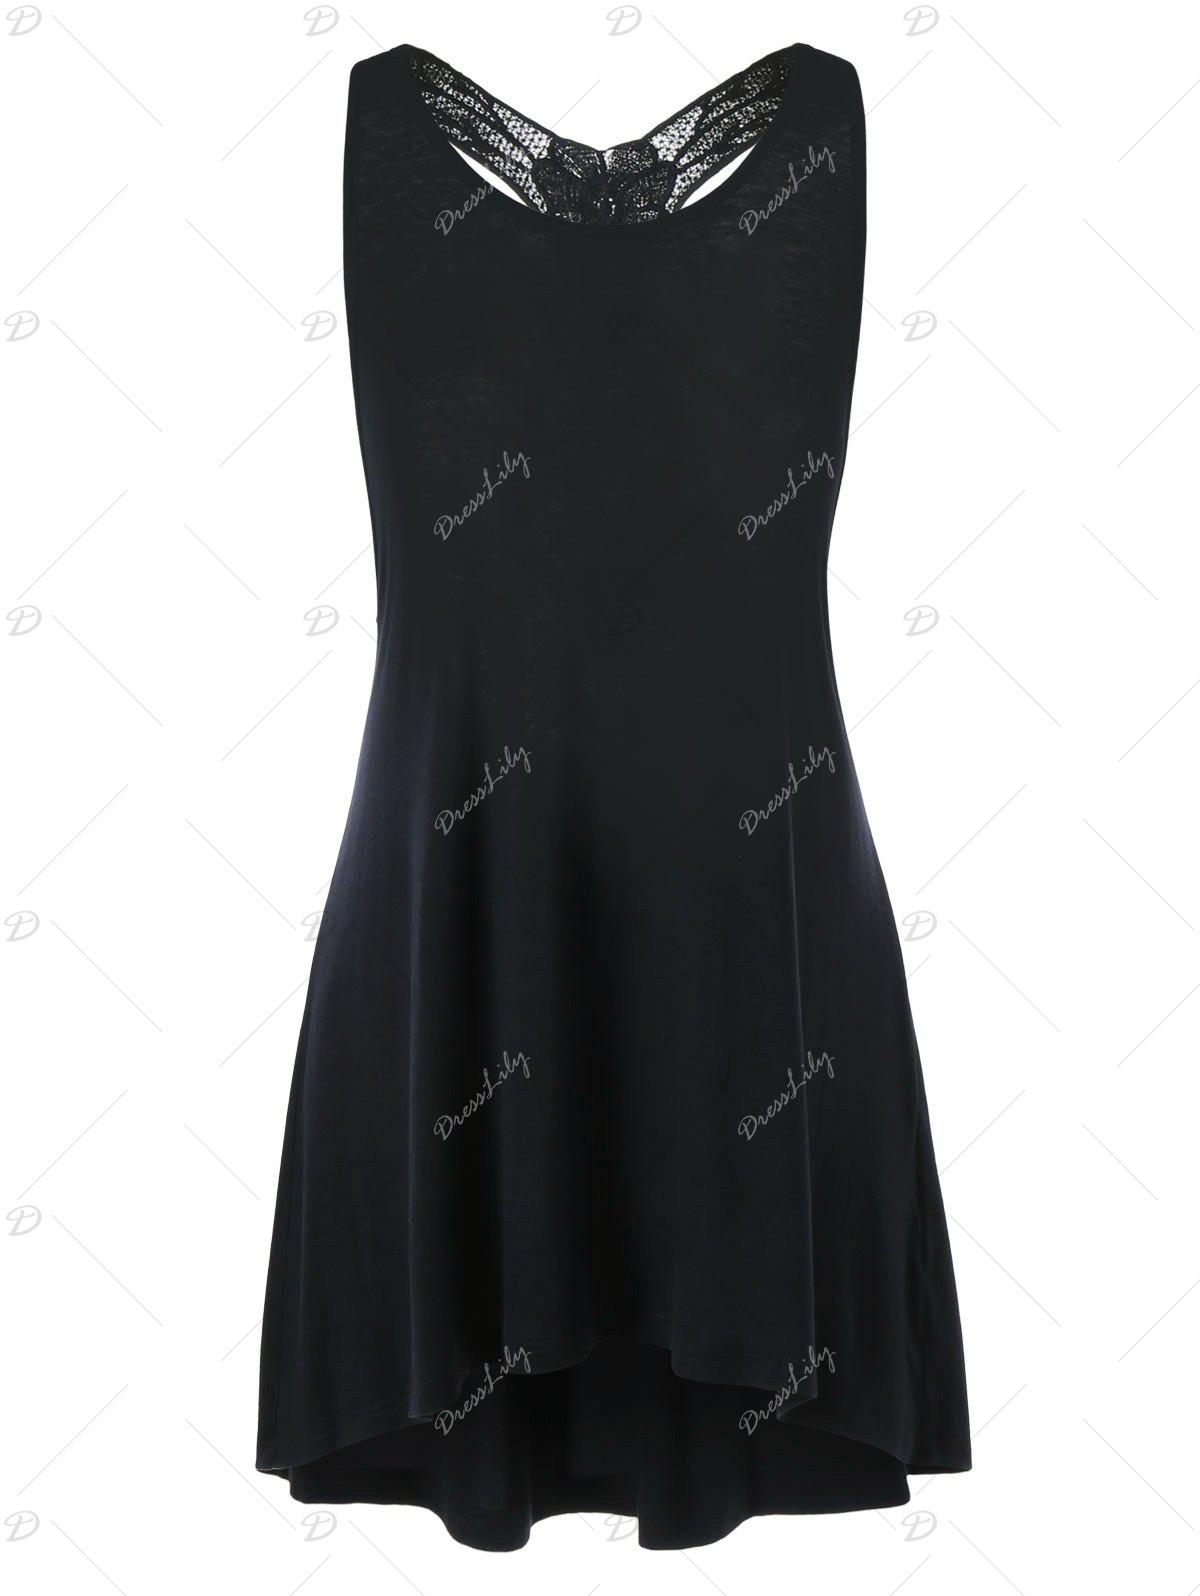 Racerback Lace Trim Tunic Top - BLACK M